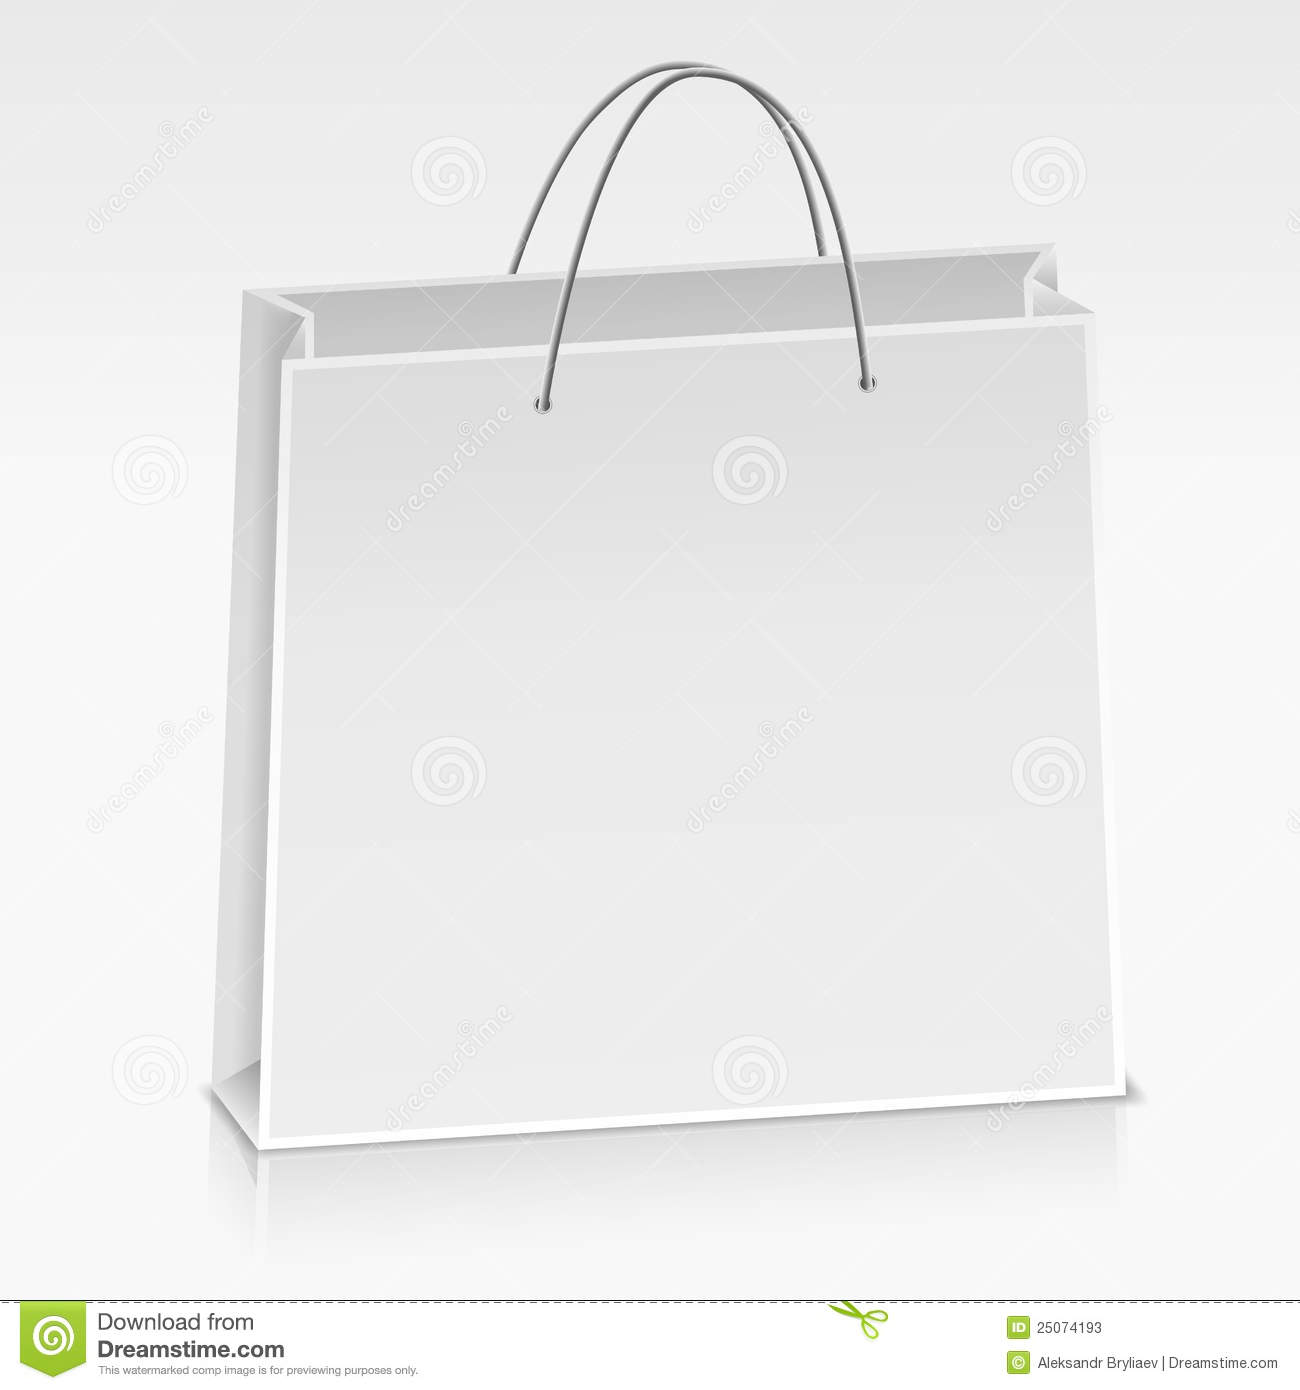 Paper Bag Stock Photos - Image: 25074193White Paper Bag Vector